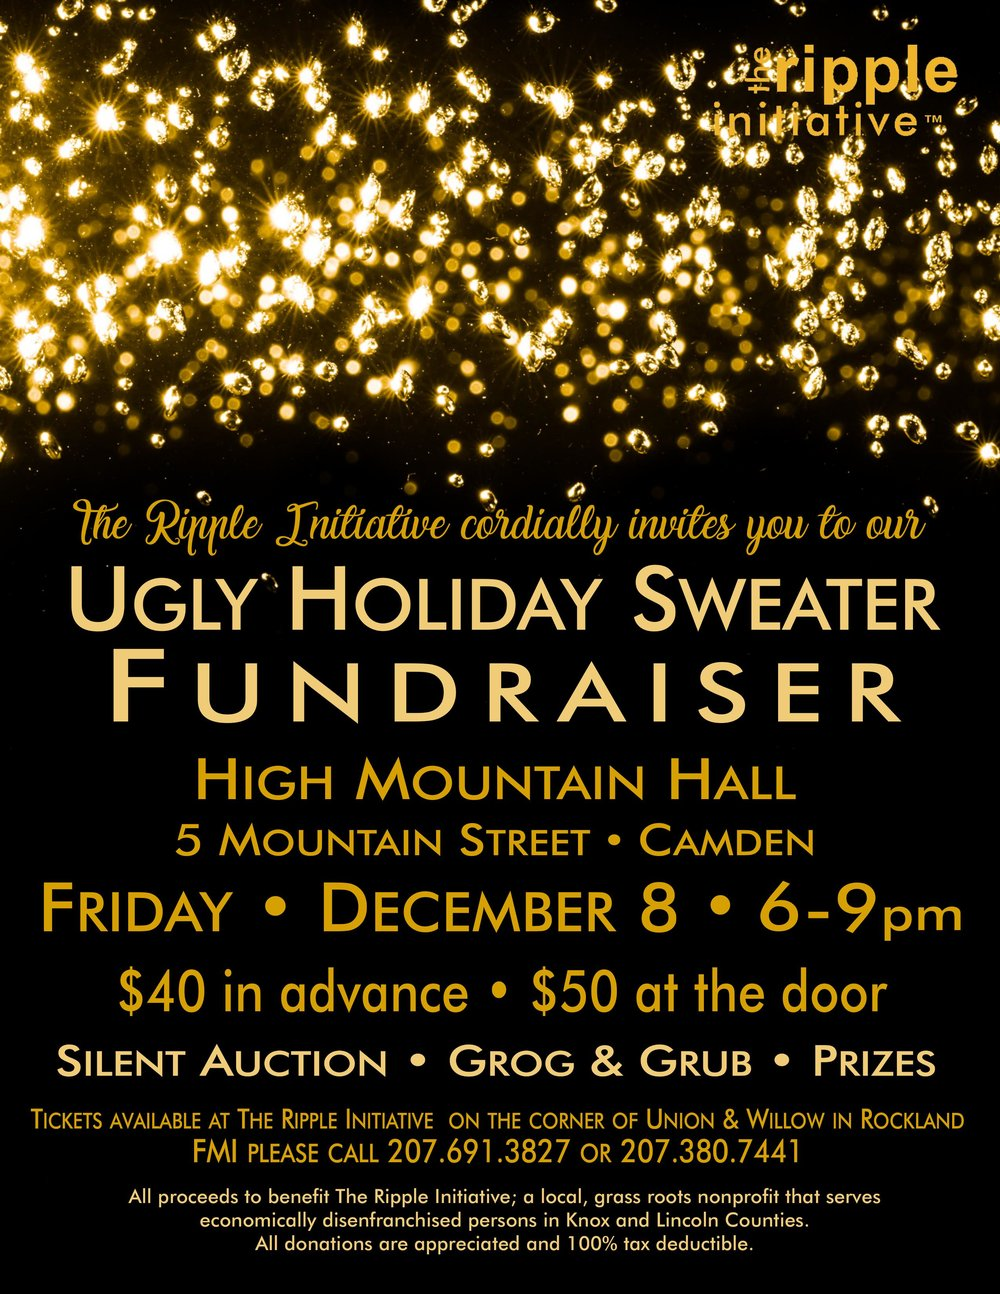 0001.jpg  sc 1 st  WRFR & Ripple Initiative\u0027s UGLY SWEATER Fundraiser \u2014 WRFR-LP